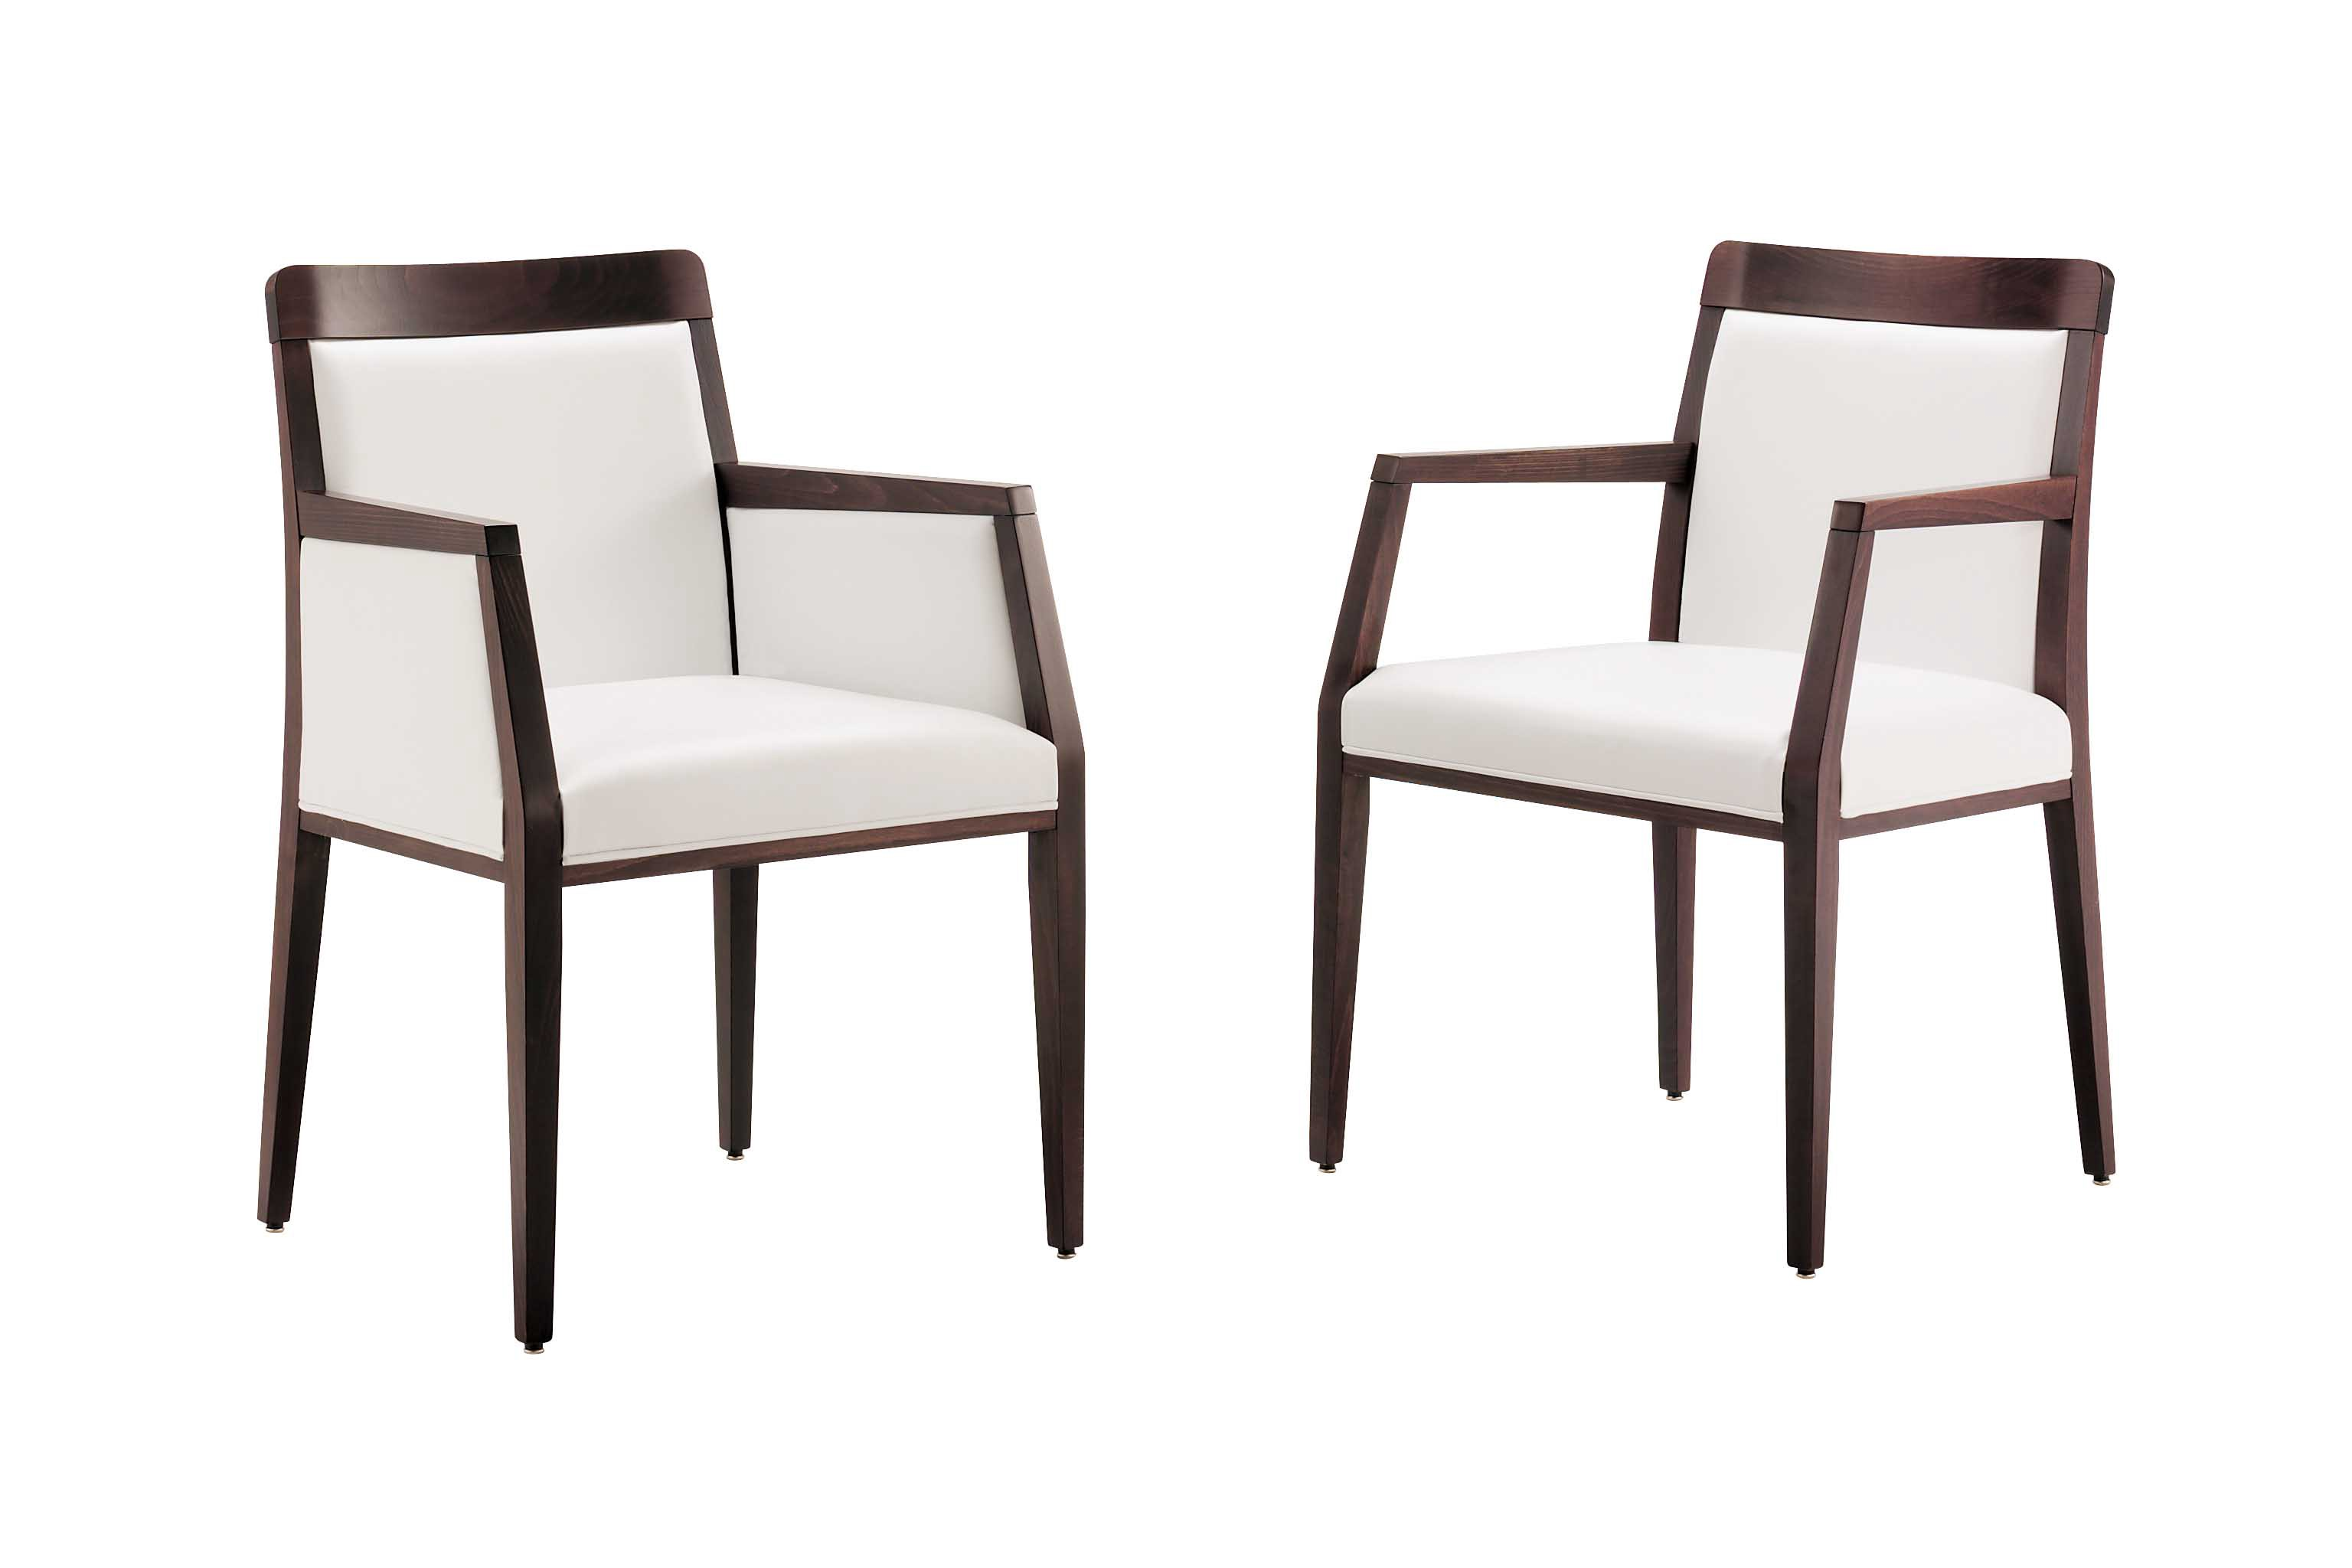 10 Best Tips for Choosing Best Restaurant Chair for your Café